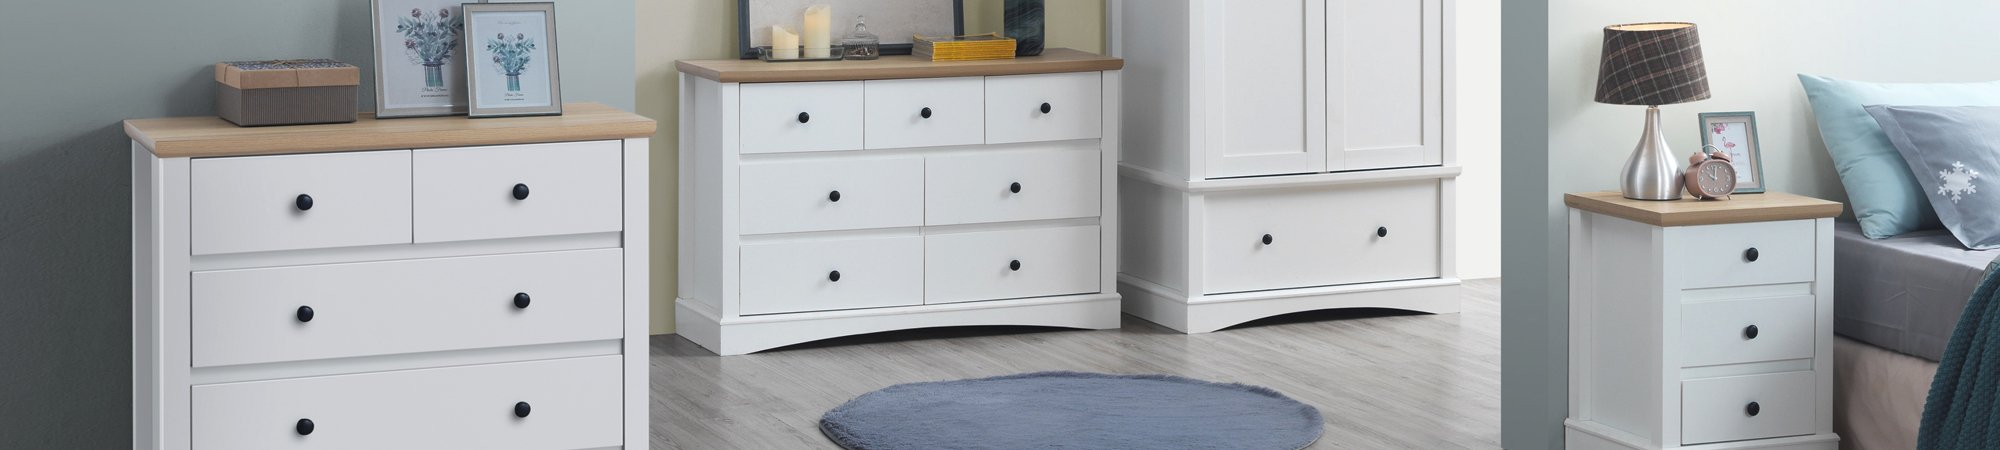 Carden Furniture Collection